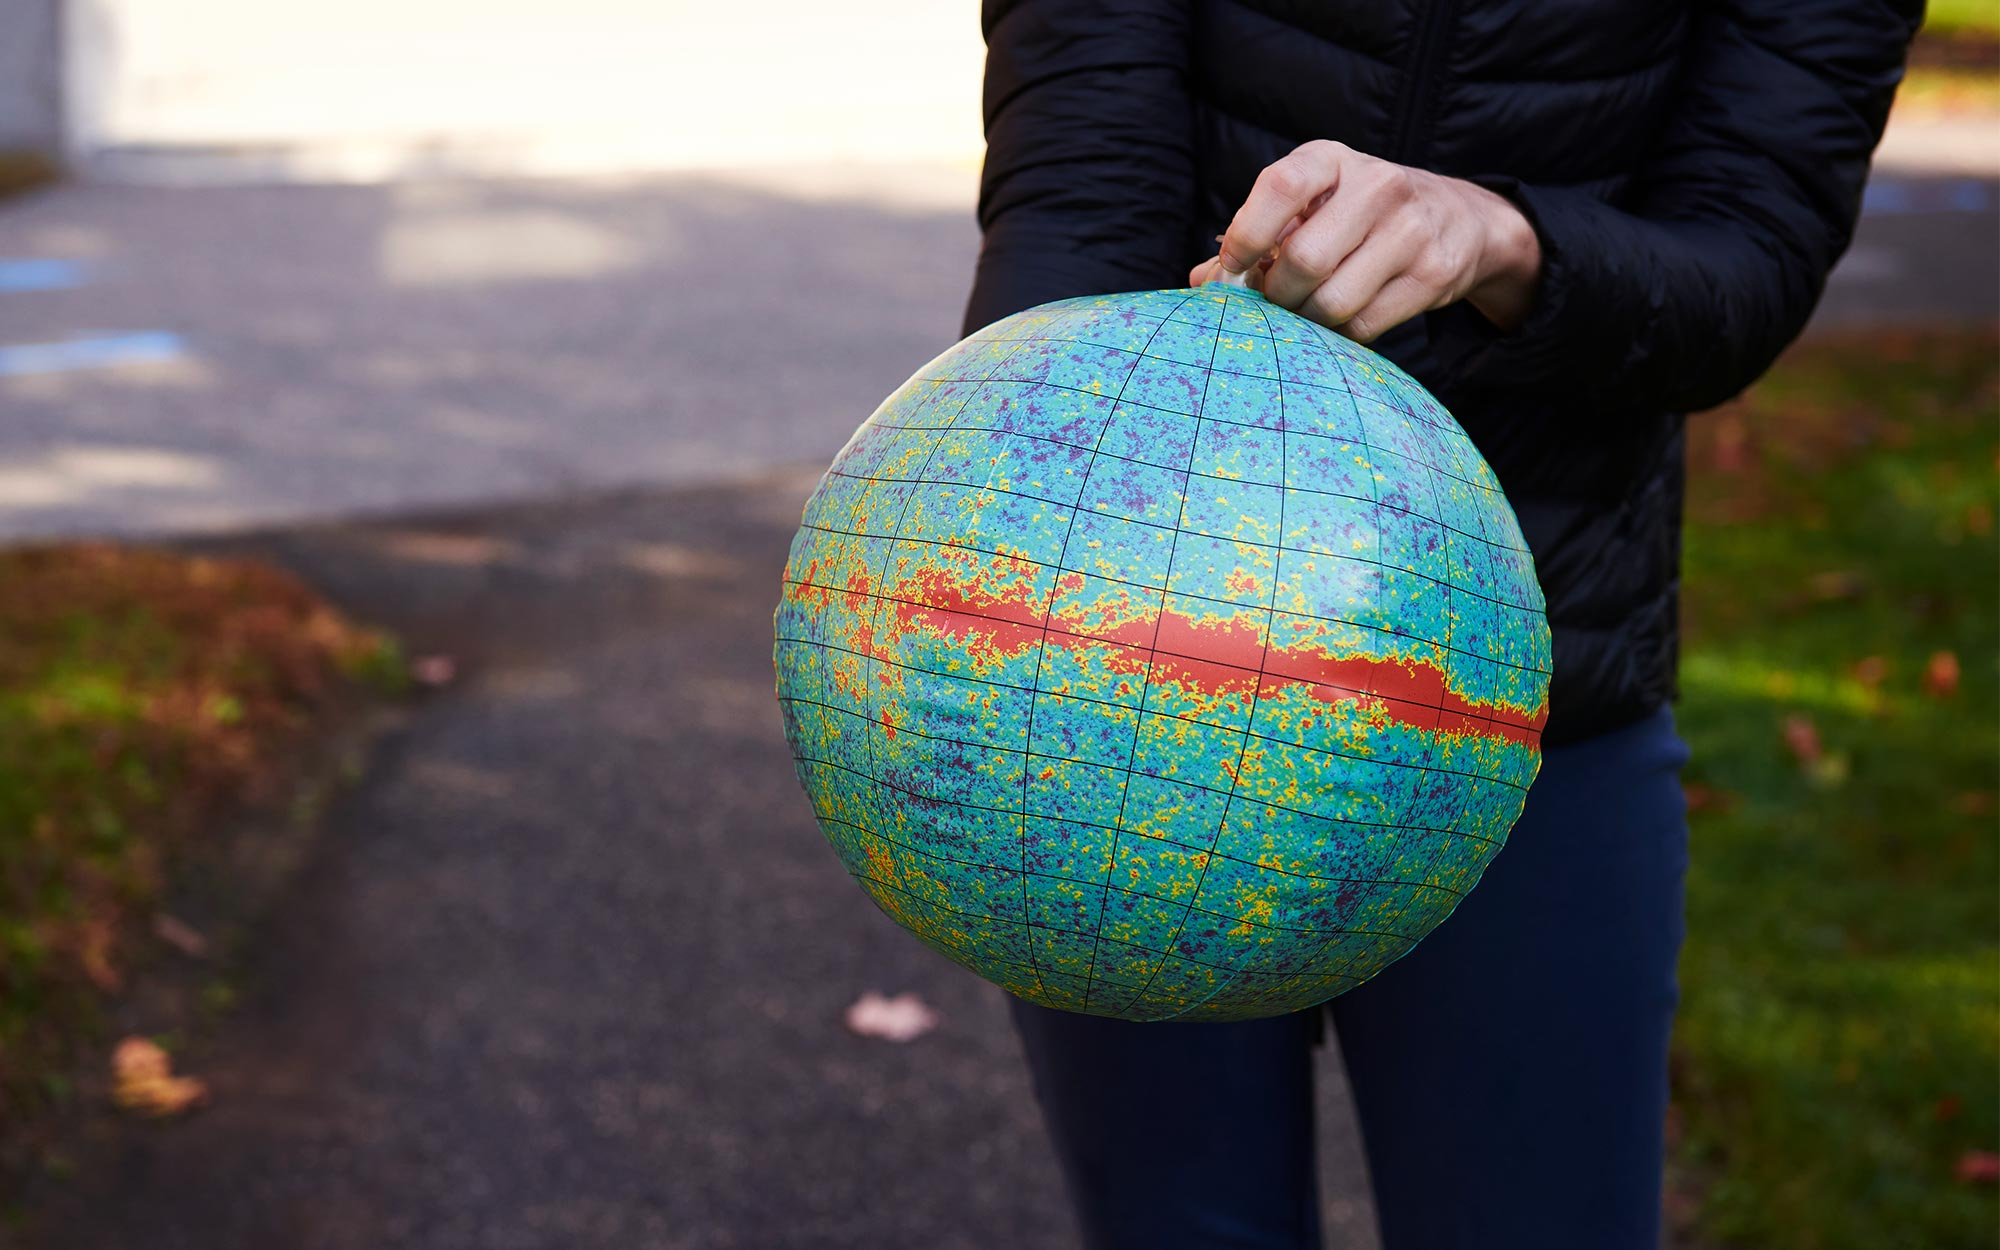 An inflatable toy map of the cosmic microwave background radiation.